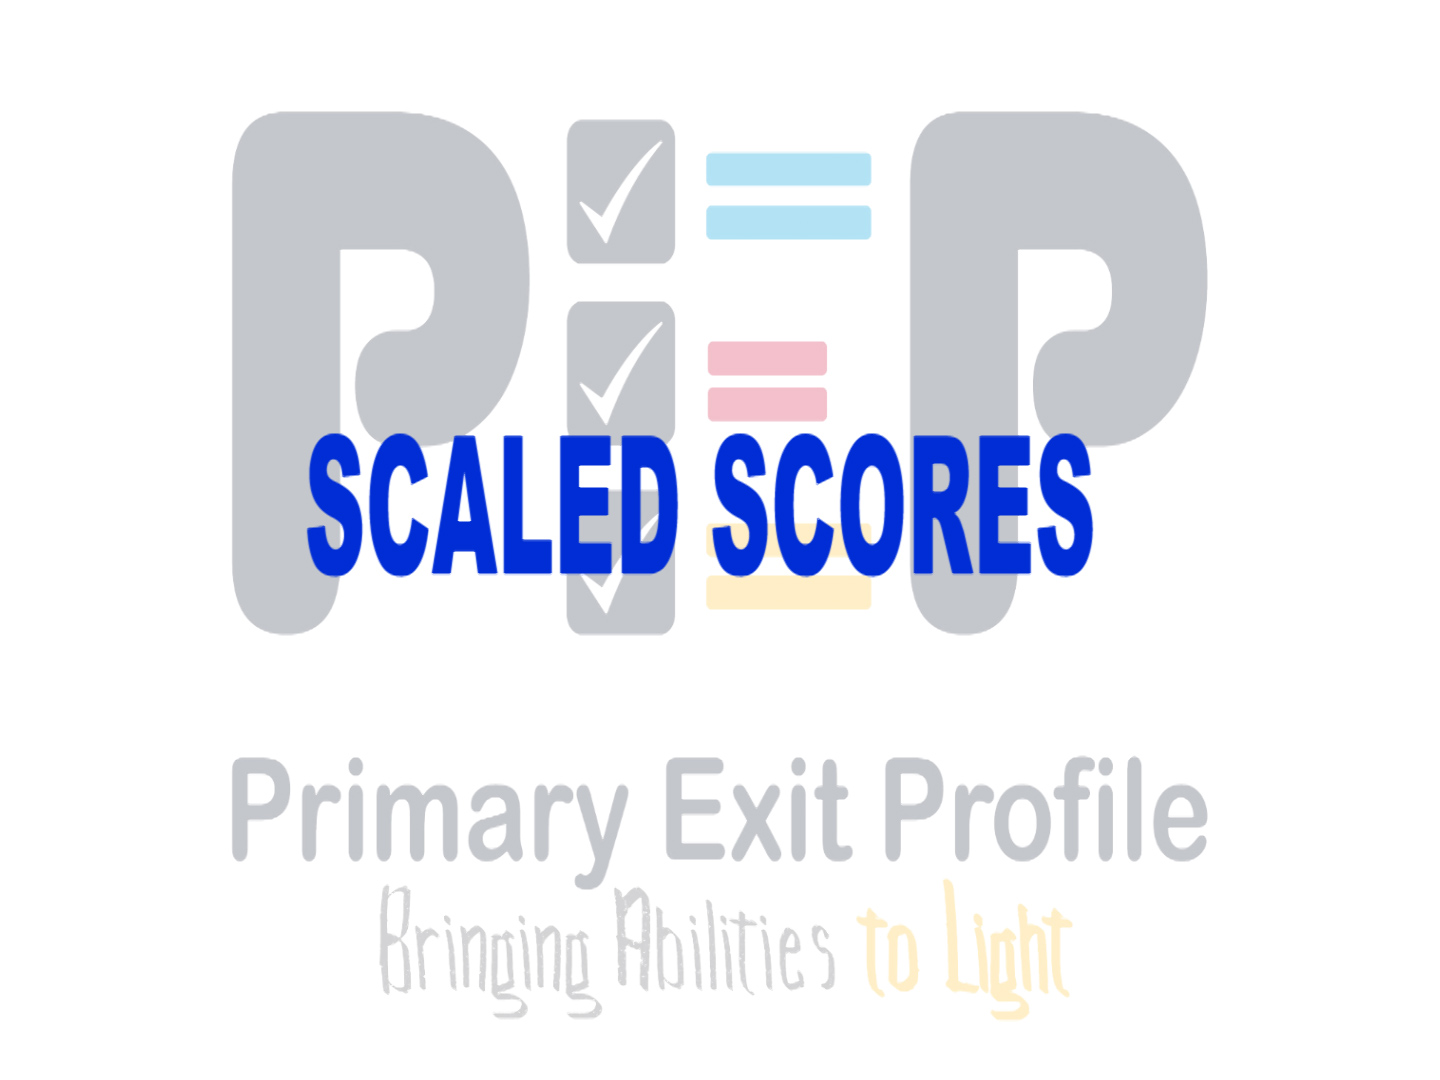 PEP Scaled Scores Summary 2019-07-01